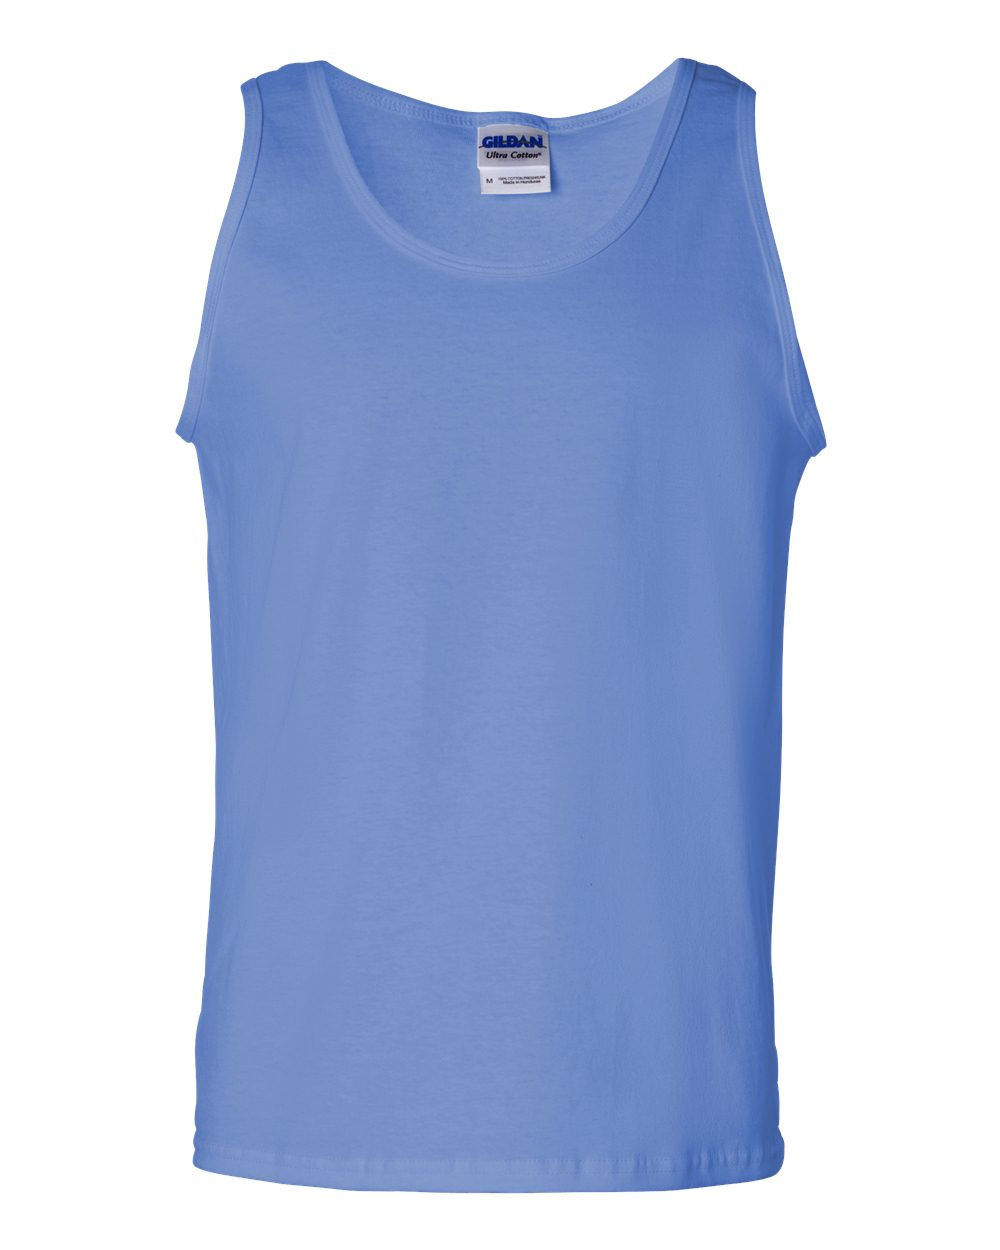 Gildan - Ultra Cotton Tank Top - Full Color - 2200